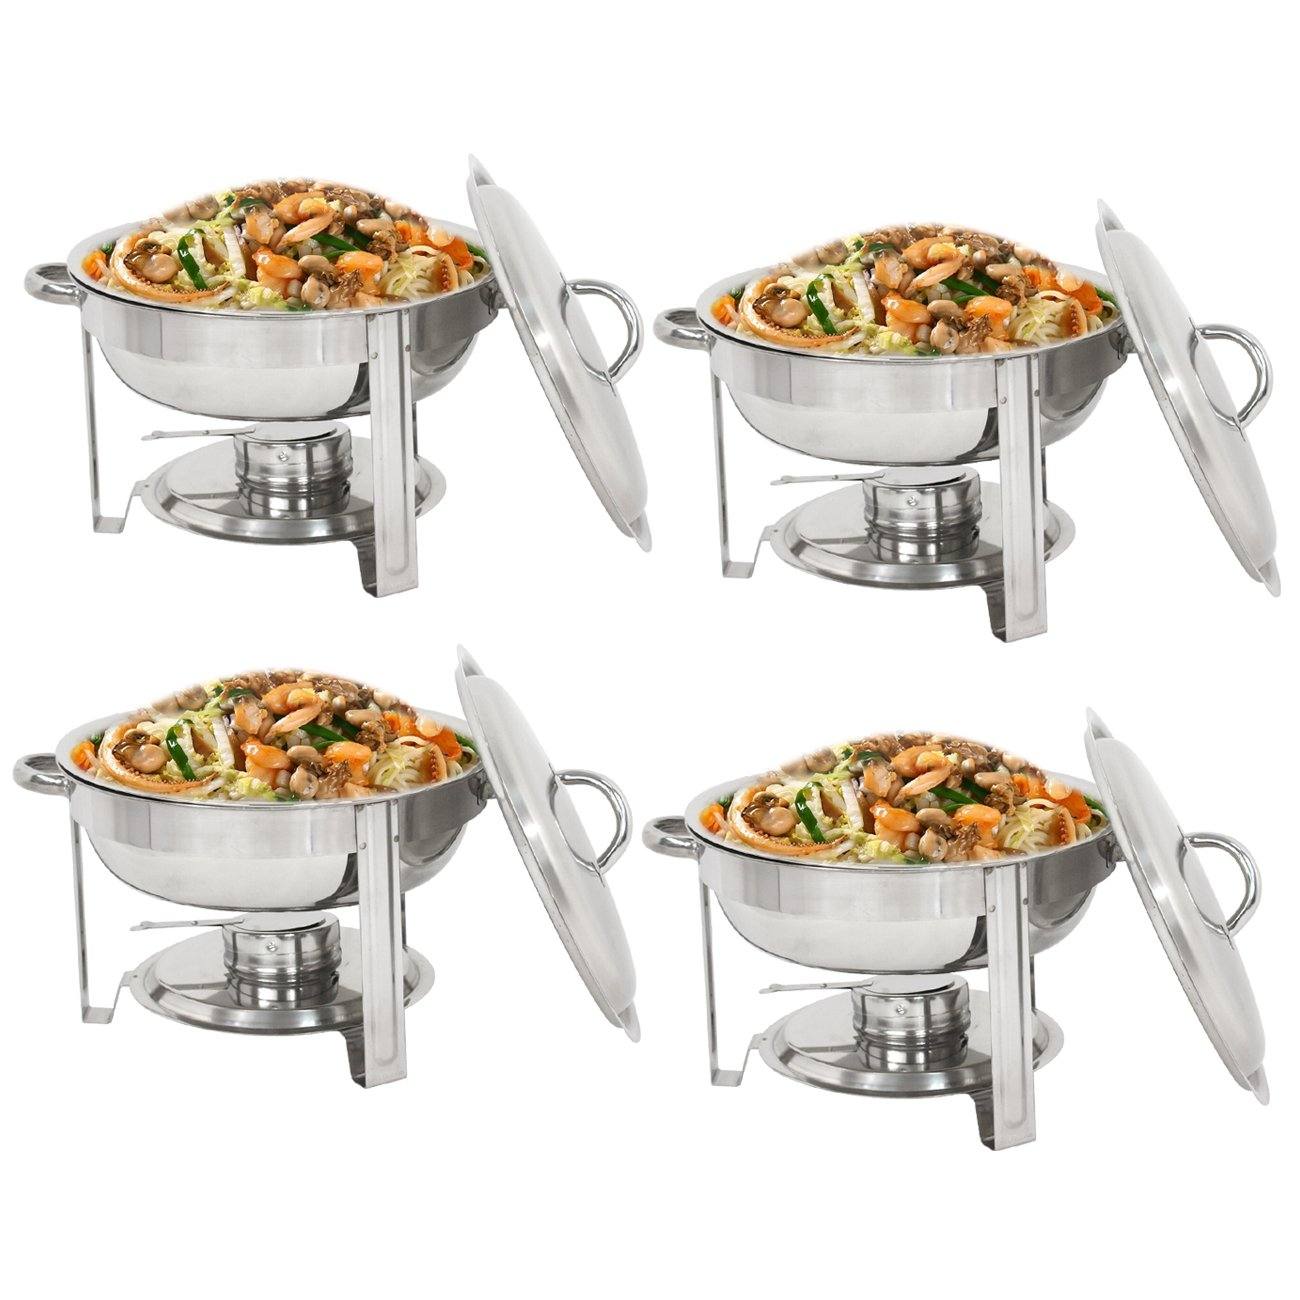 SUPER DEAL Upgraded 5 Qt Full Size Stainless Steel Chafing Dish Round Chafer Buffet Catering Warmer Set w/Food and Water Pan, Lid, Solid Stand and Fuel Holder by SuperDealUsa